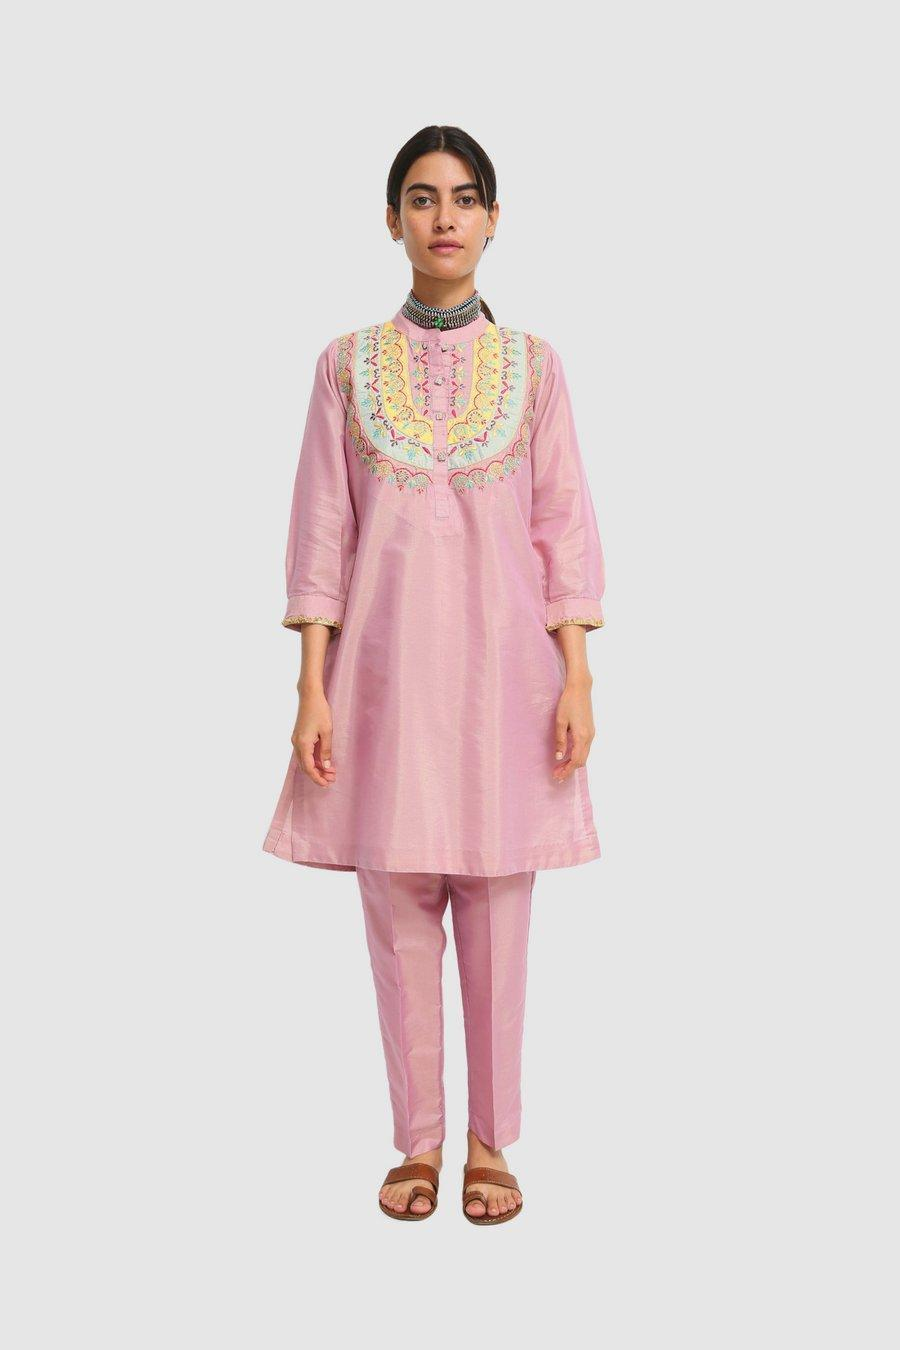 Generation - Pink Noor Bano Embroidered 2-Pc - 2 Pc